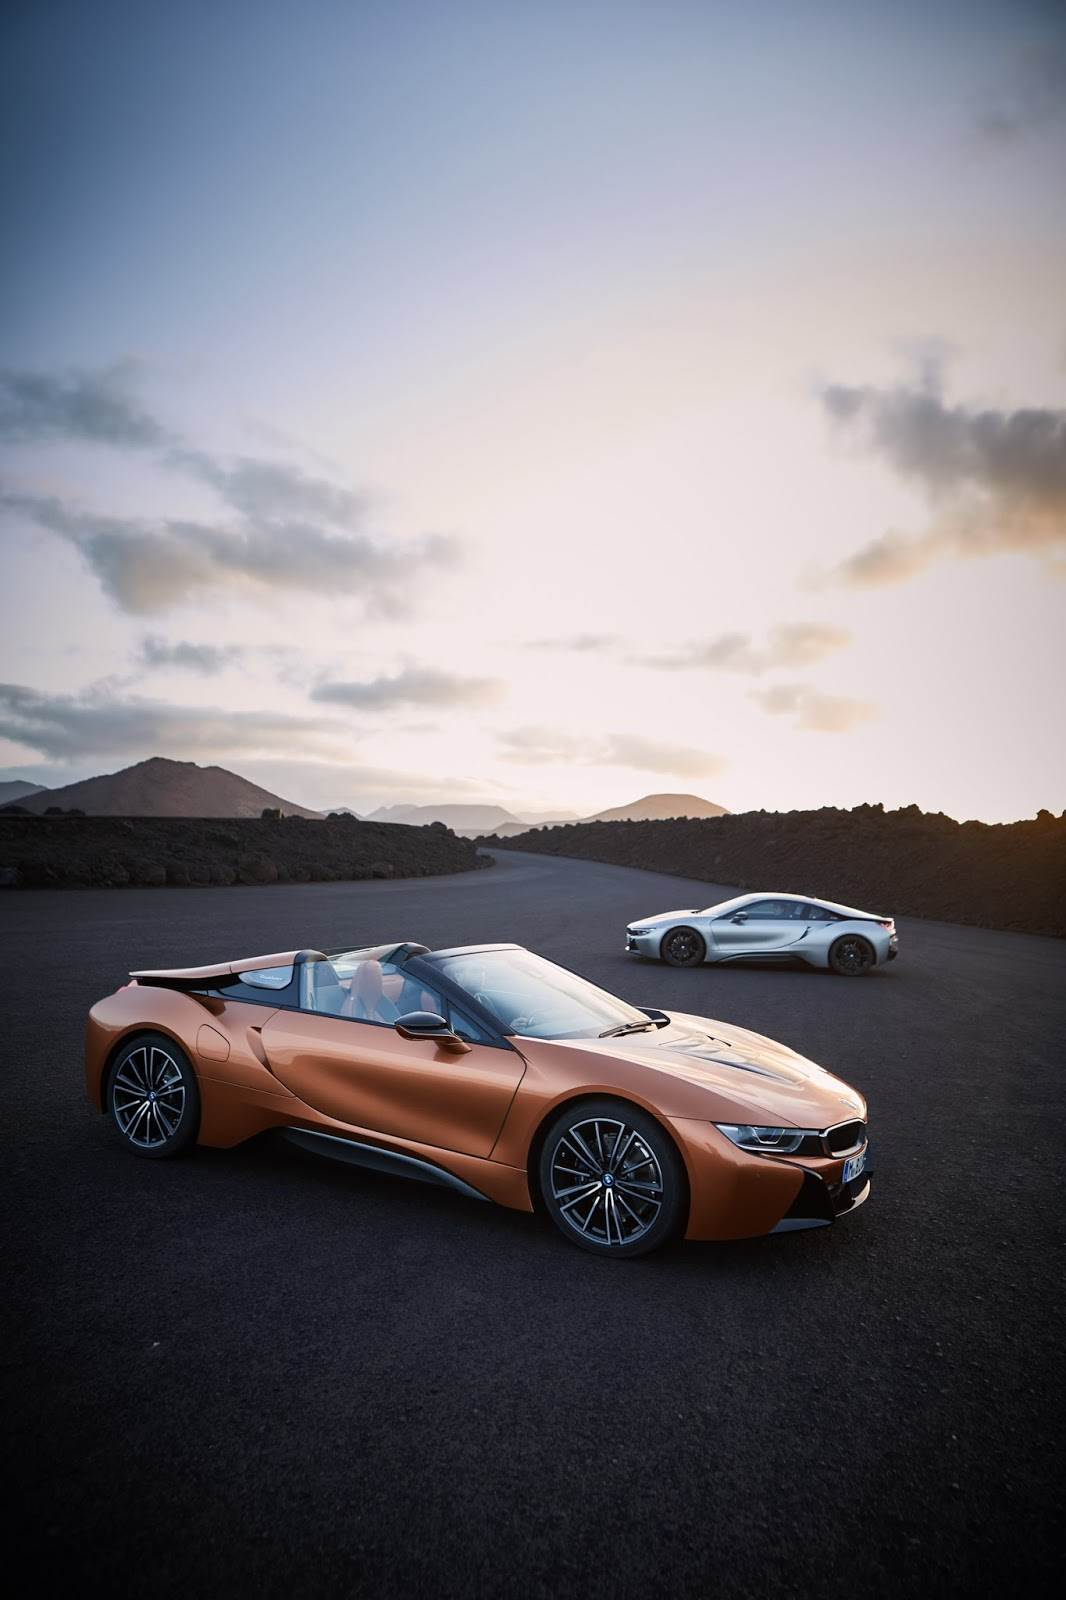 2018 BMW i8 Coupe, Roadster image gallery